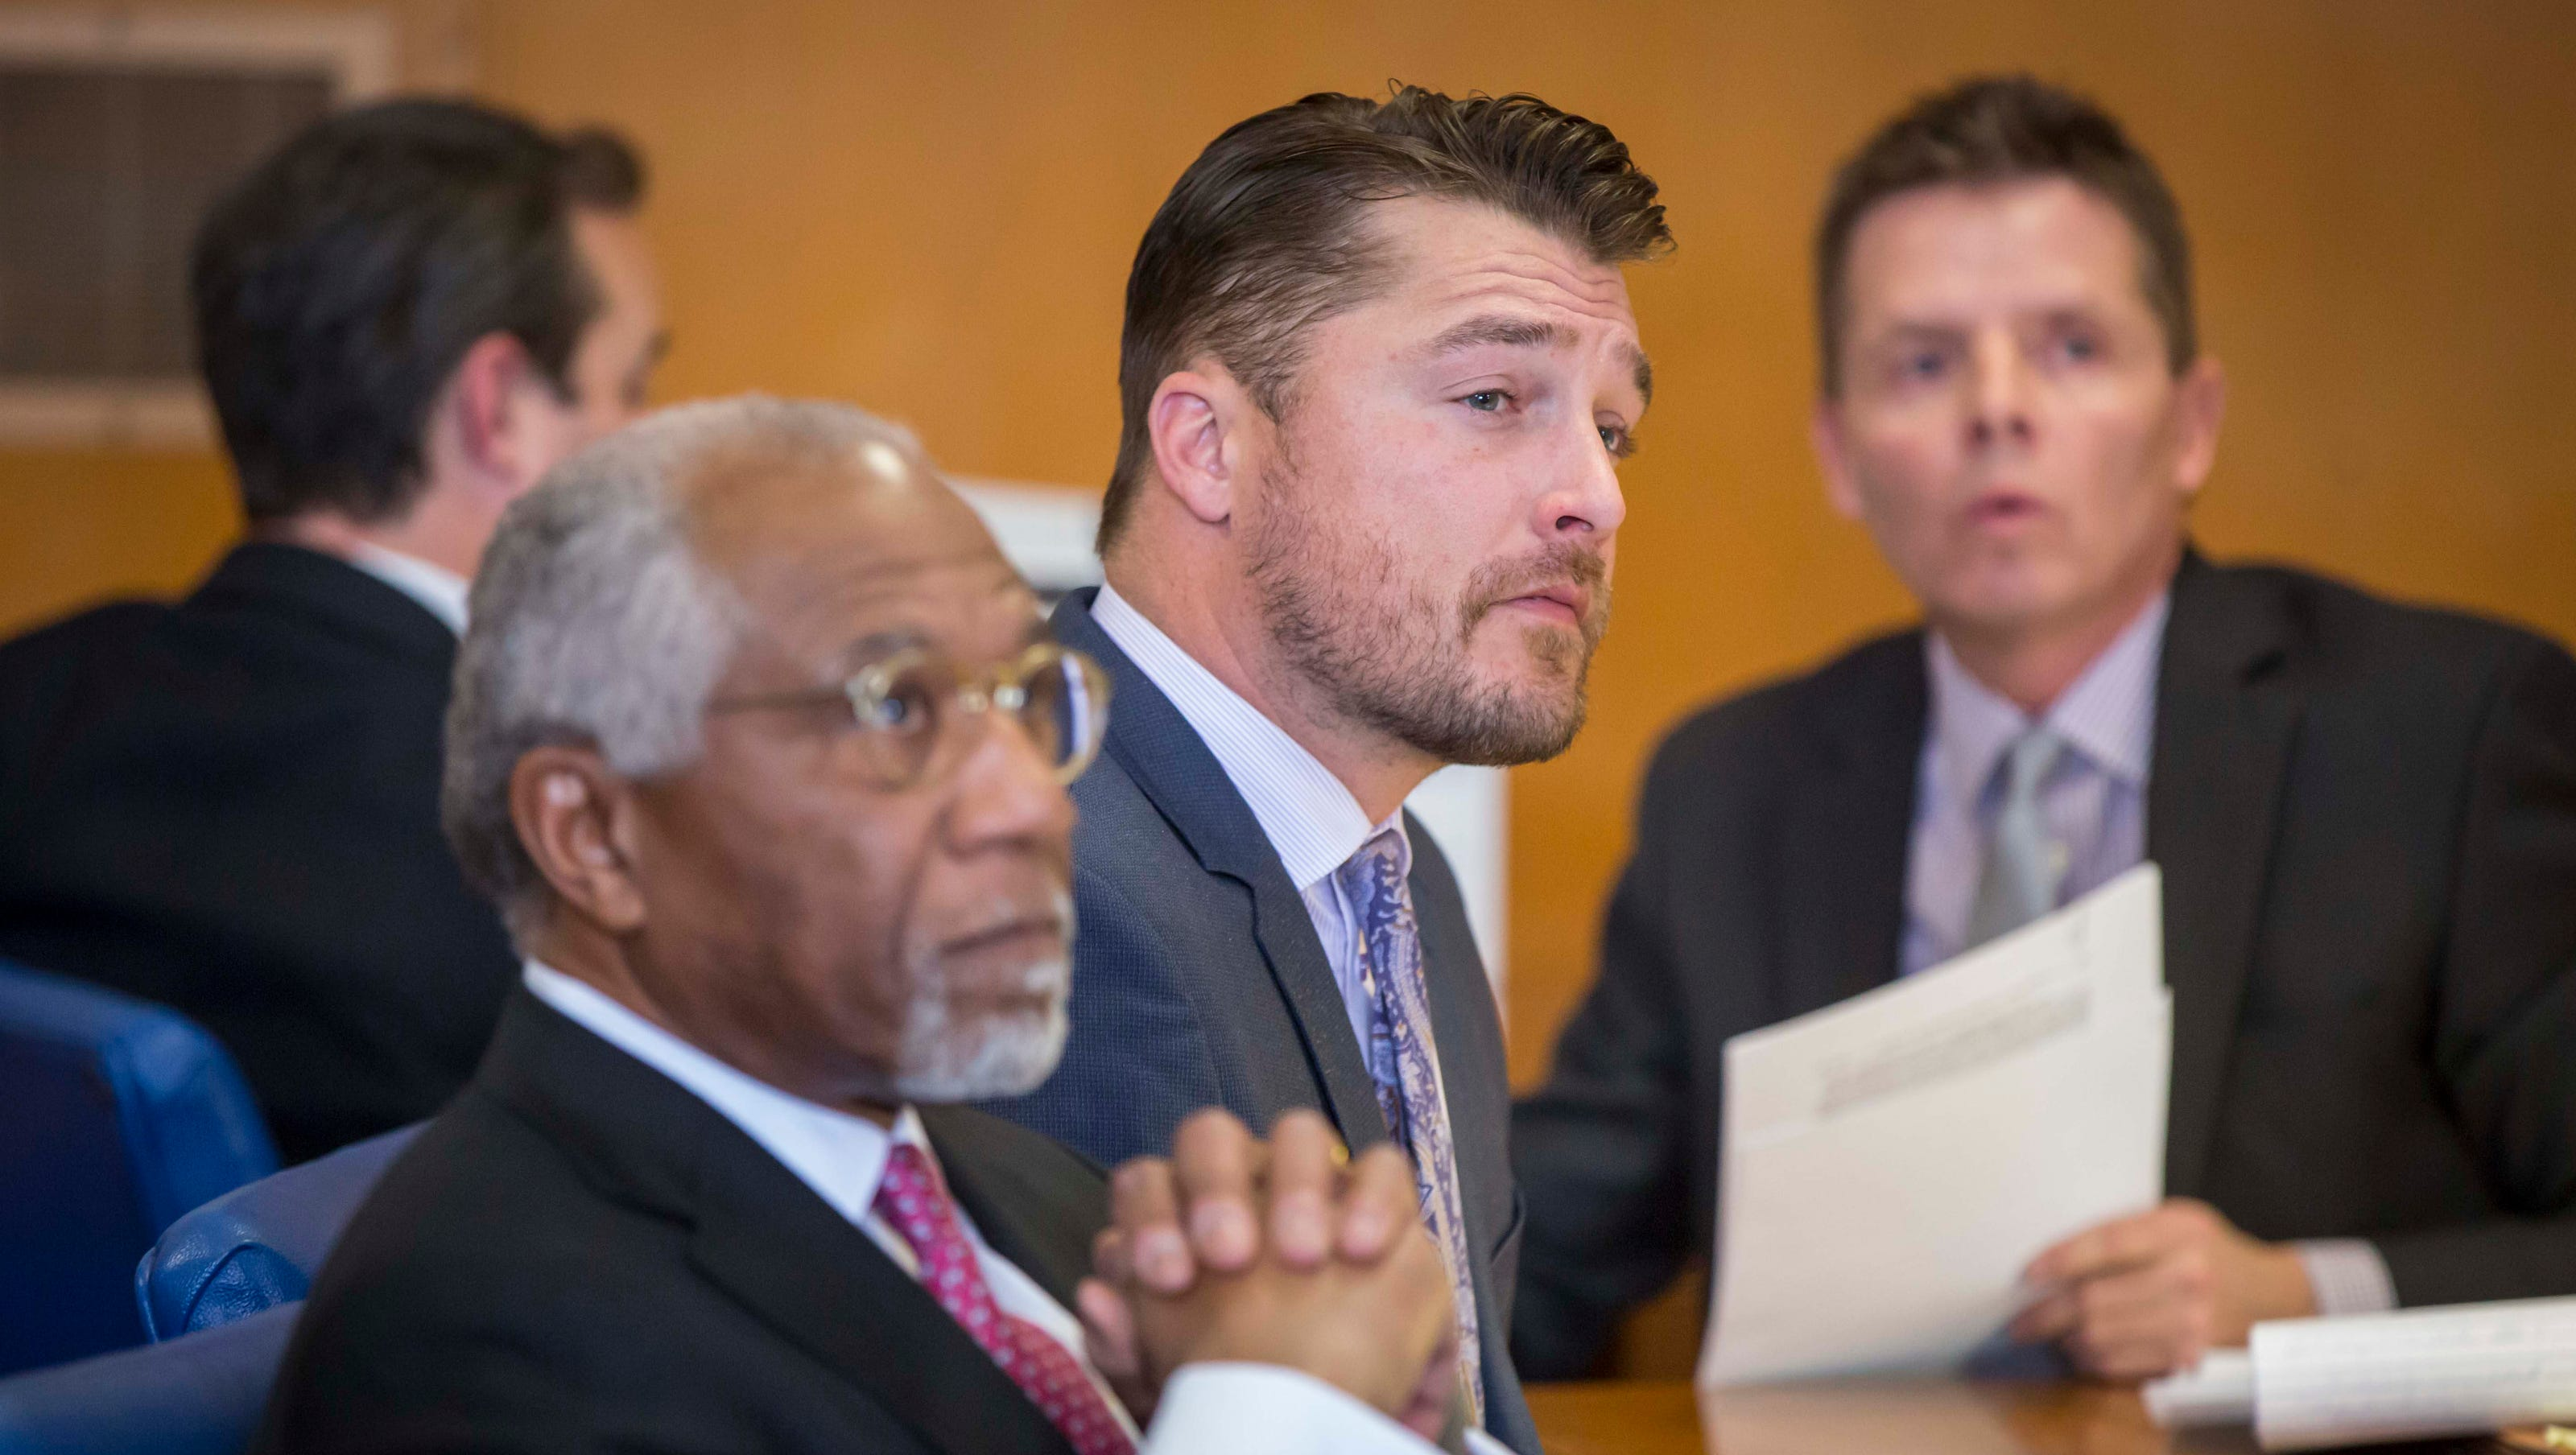 Chris Soules requests court hearings be relocated out of county where fatal crash took place